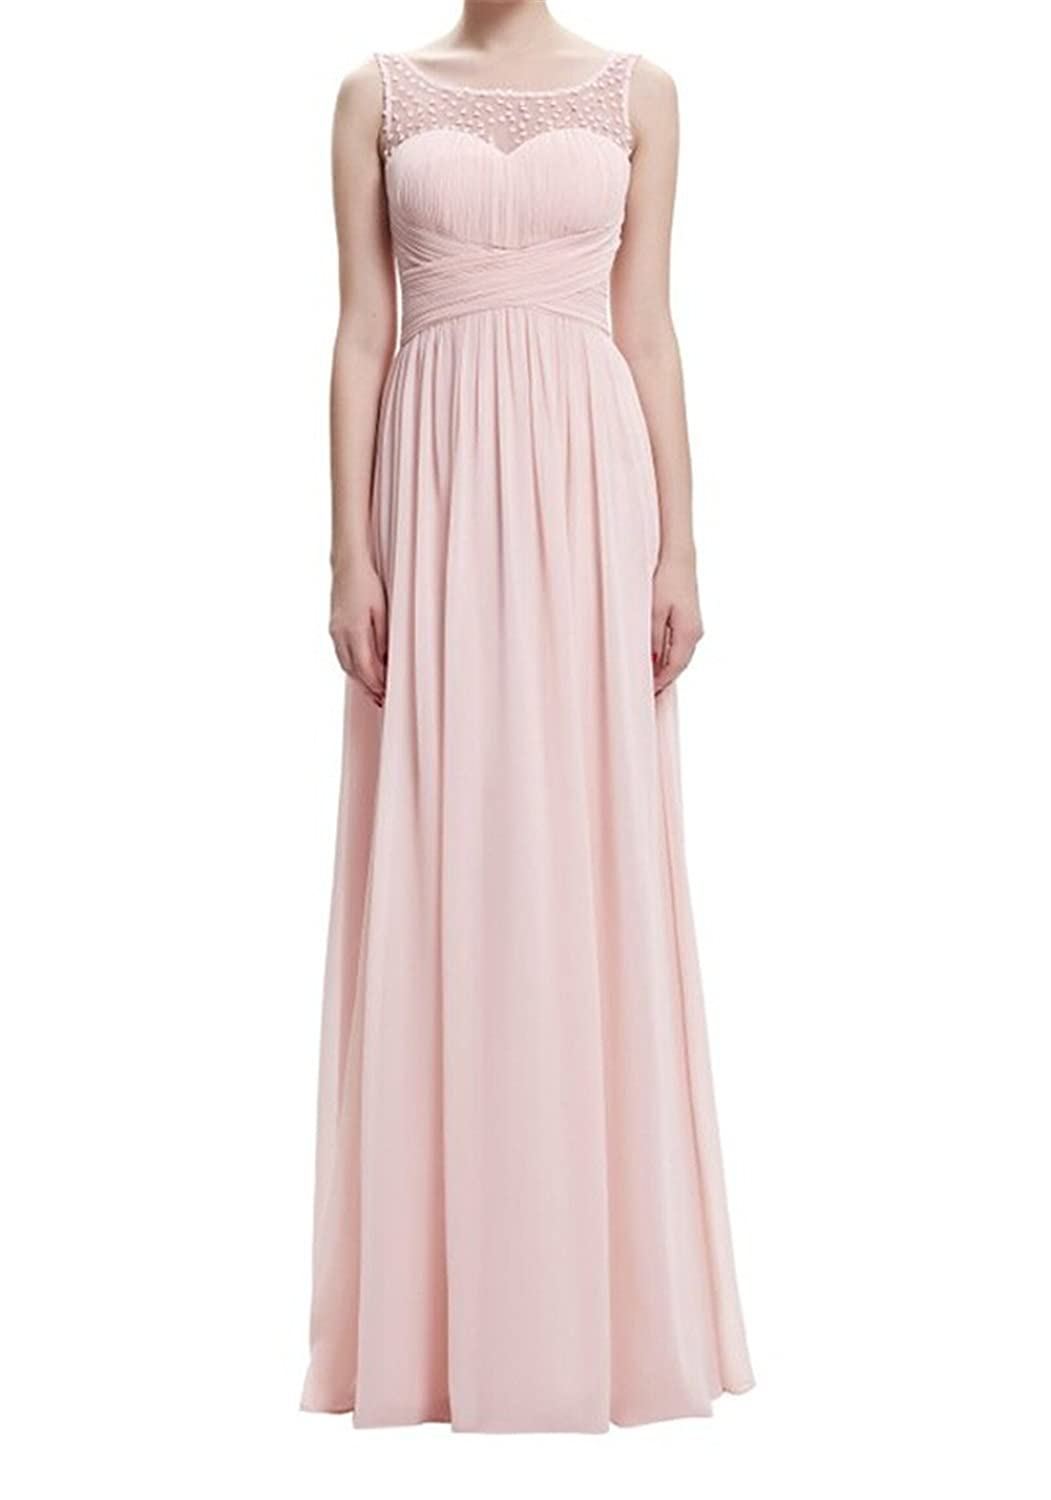 AngelDragon Straps Ruched Waist Chiffon Party Prom Long Bridesmaid Dress